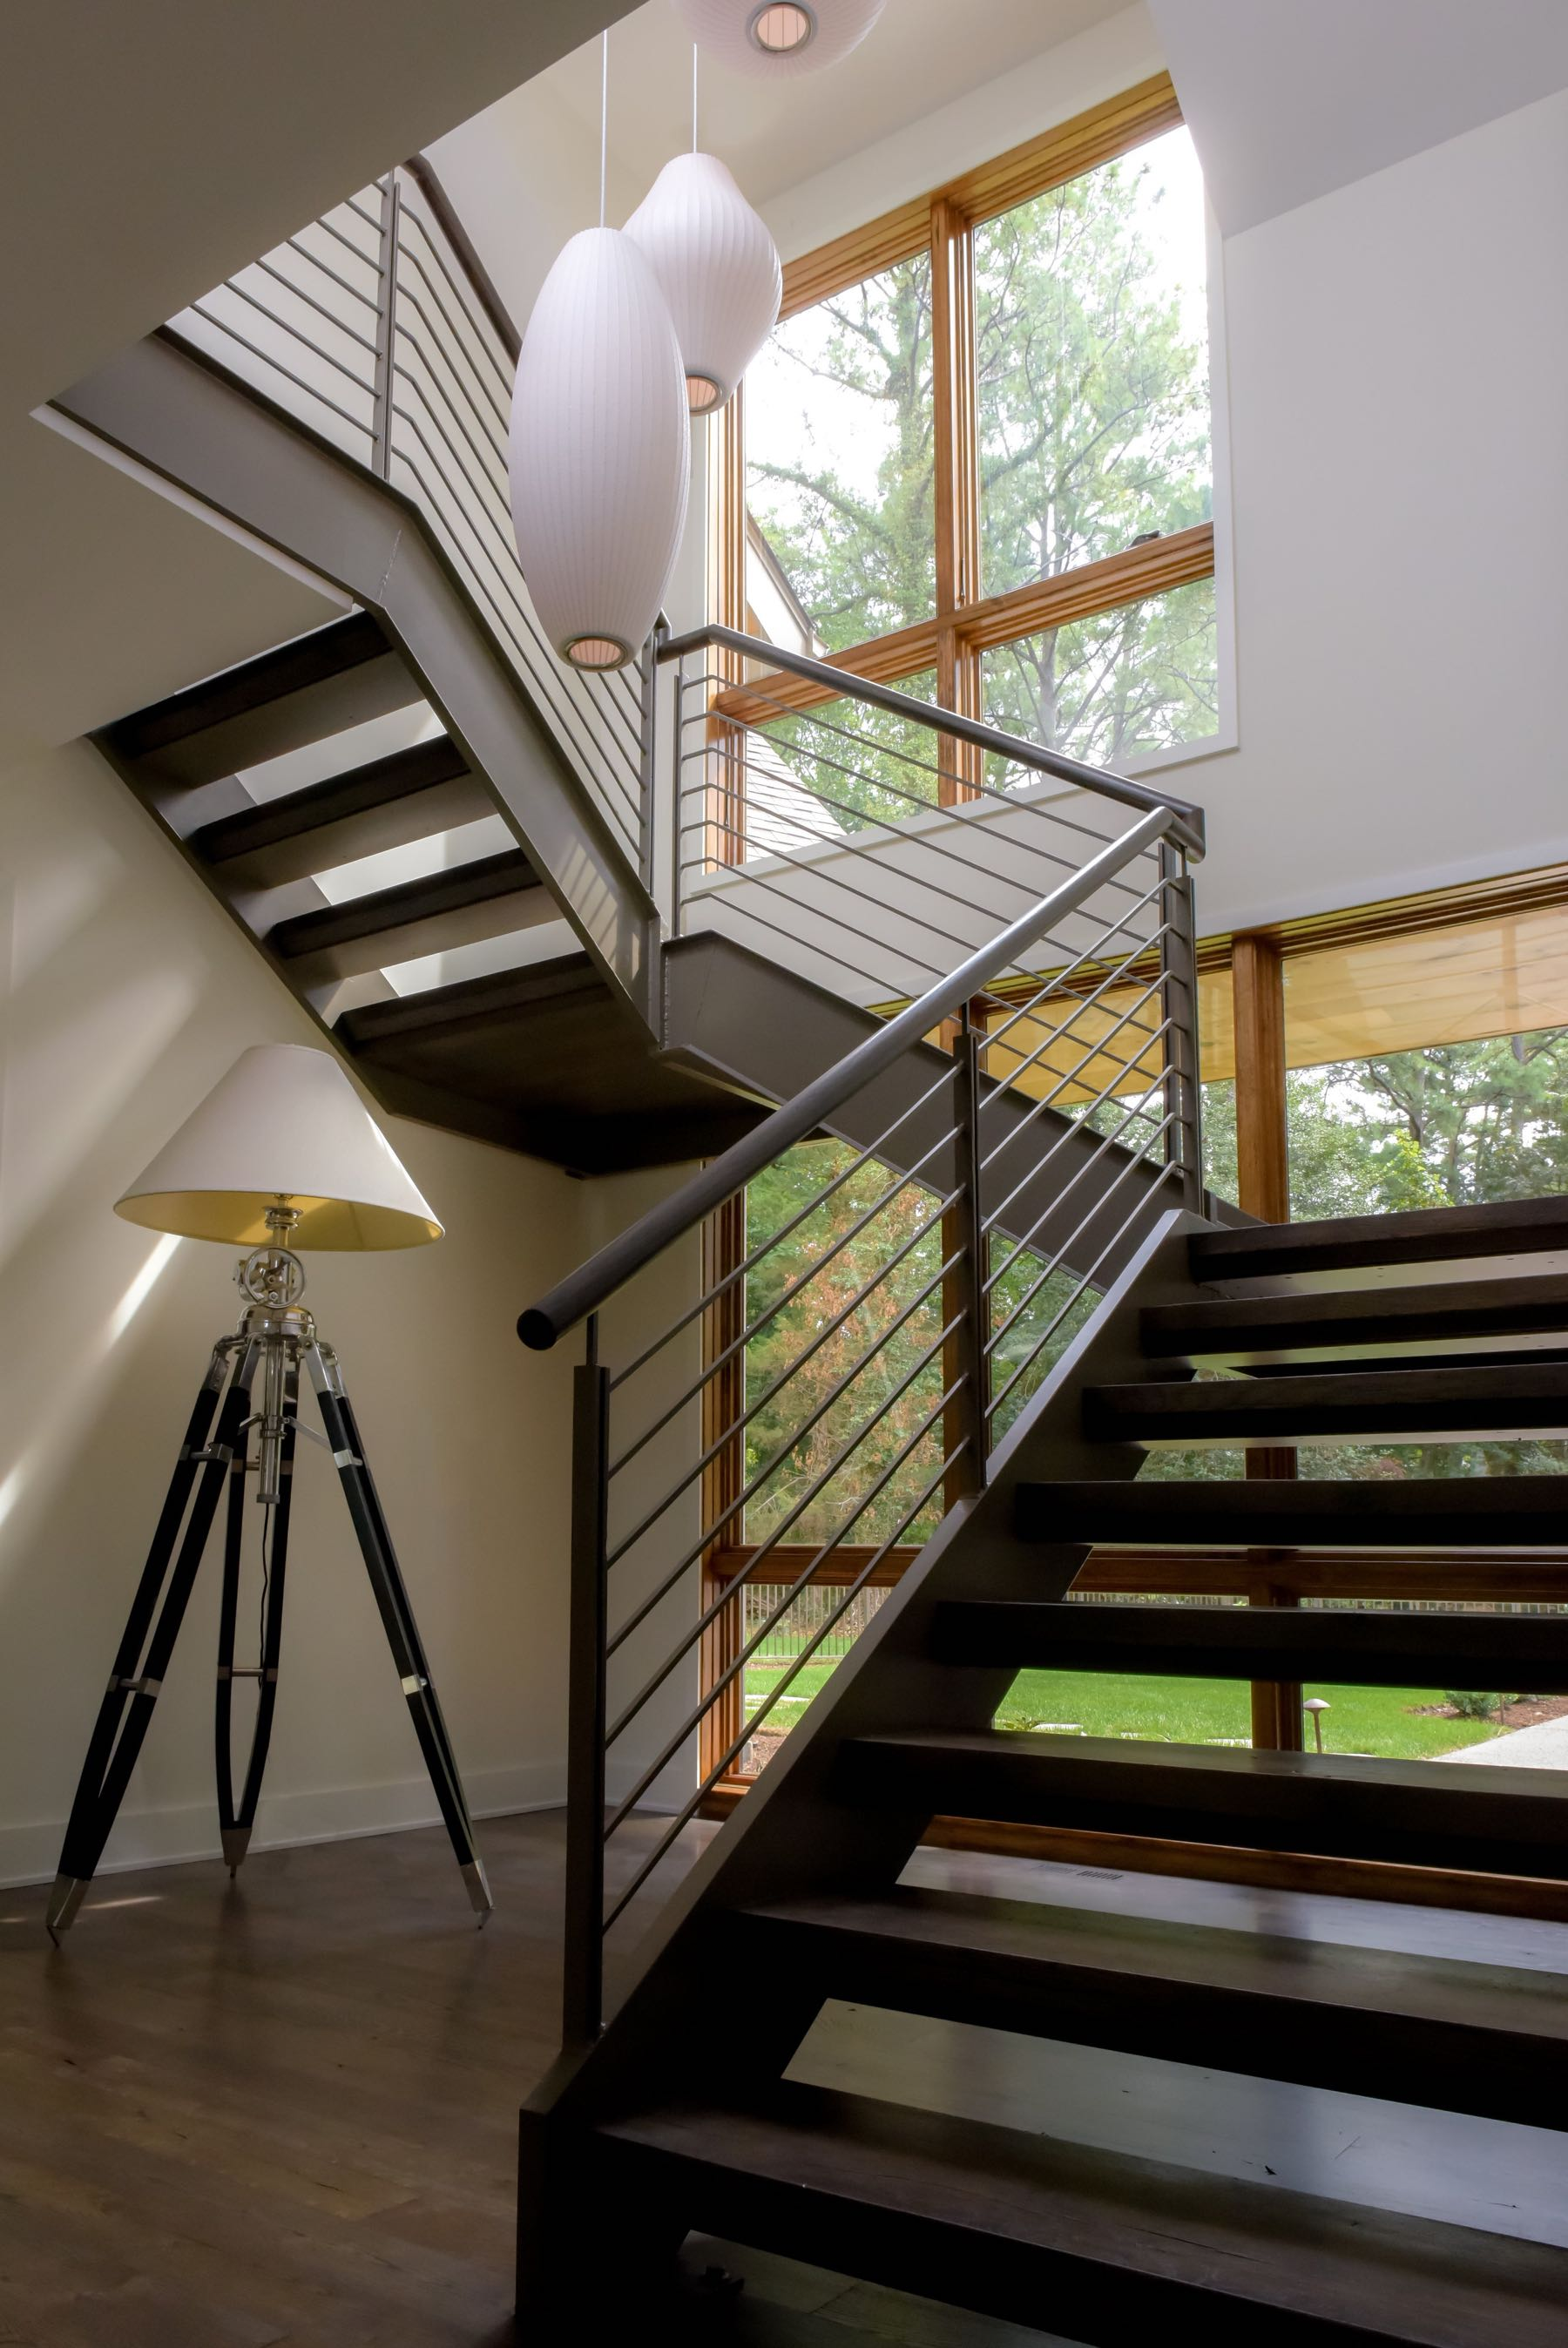 work performed while at Barnes Vanze Architects | Kam Photography |